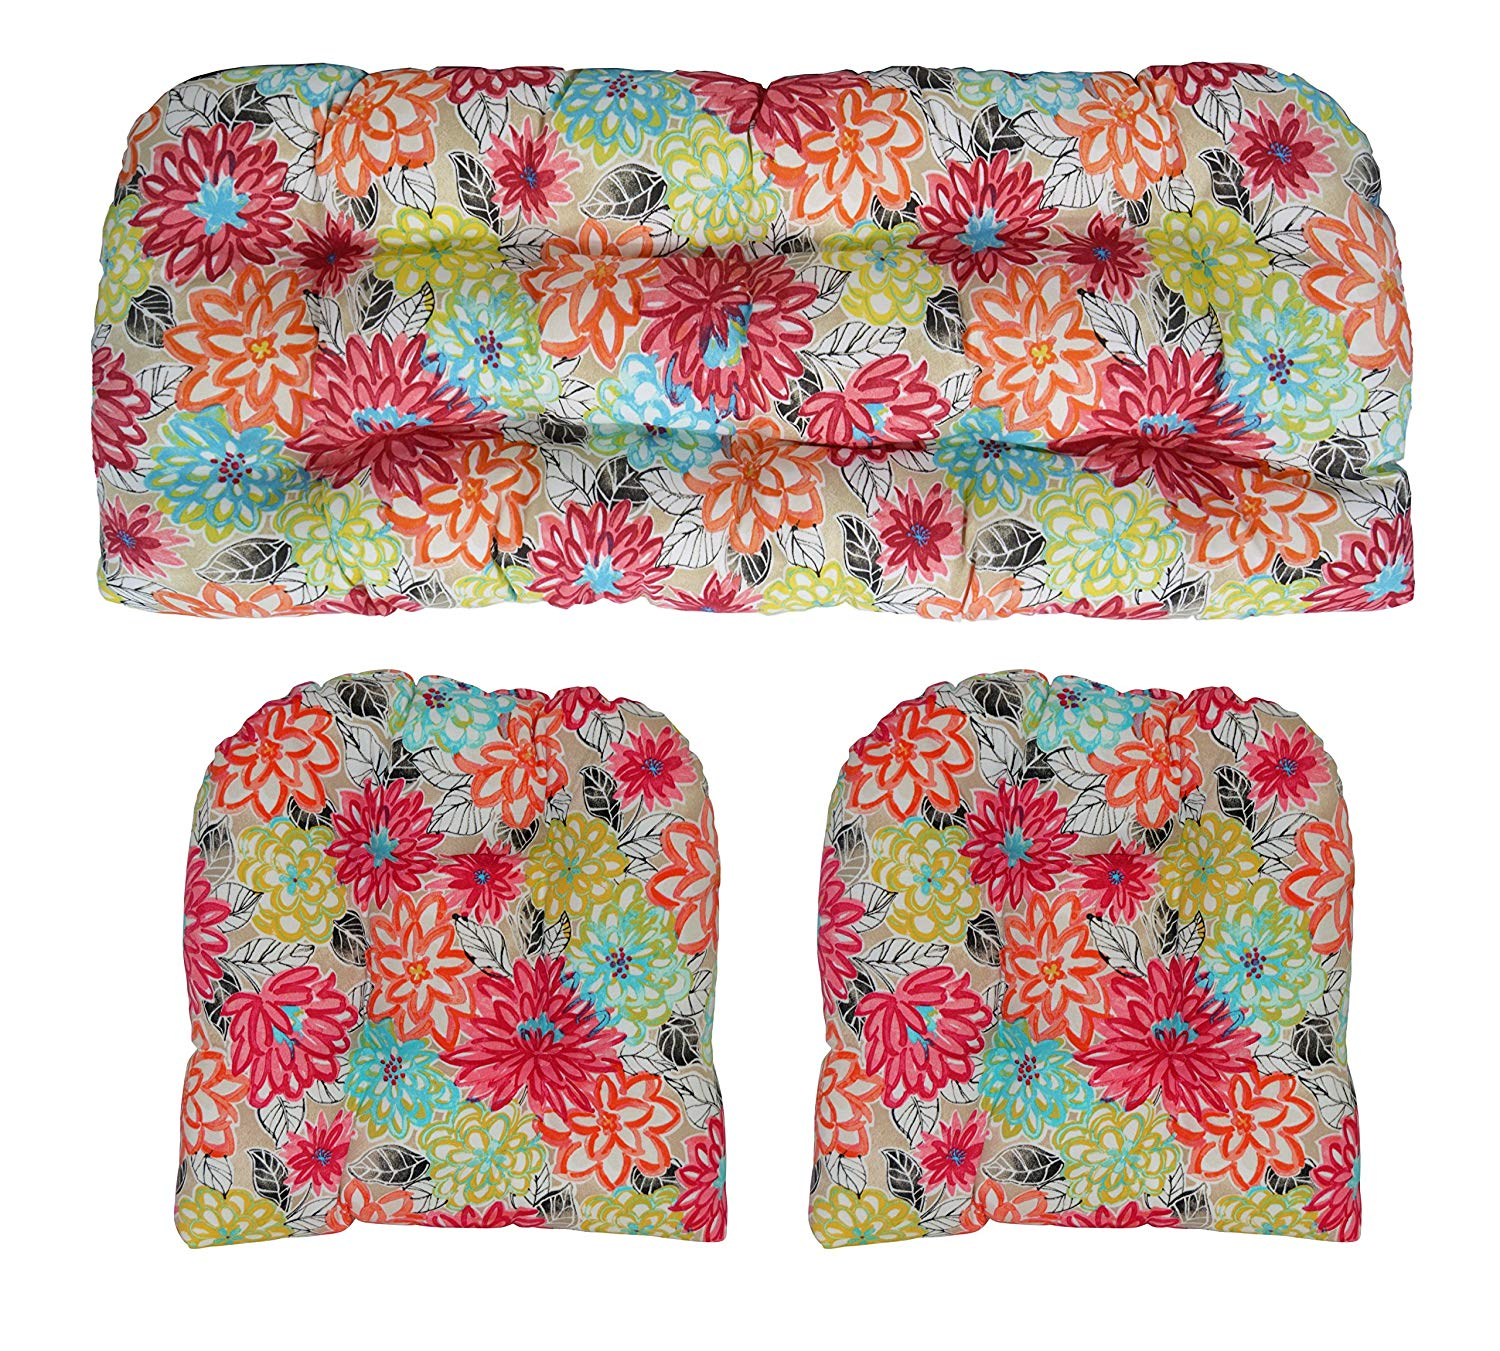 """RSH Décor Indoor Outdoor Floral Large (44"""" x 22"""" & 21""""x 21"""") Wicker Tufted 3 Piece Set 1 - Loveseat Settee & 2 - U - Shape Chair Cushions - Yellow, Orange, Blue, Pink Bright Artistic Floral Cushions"""